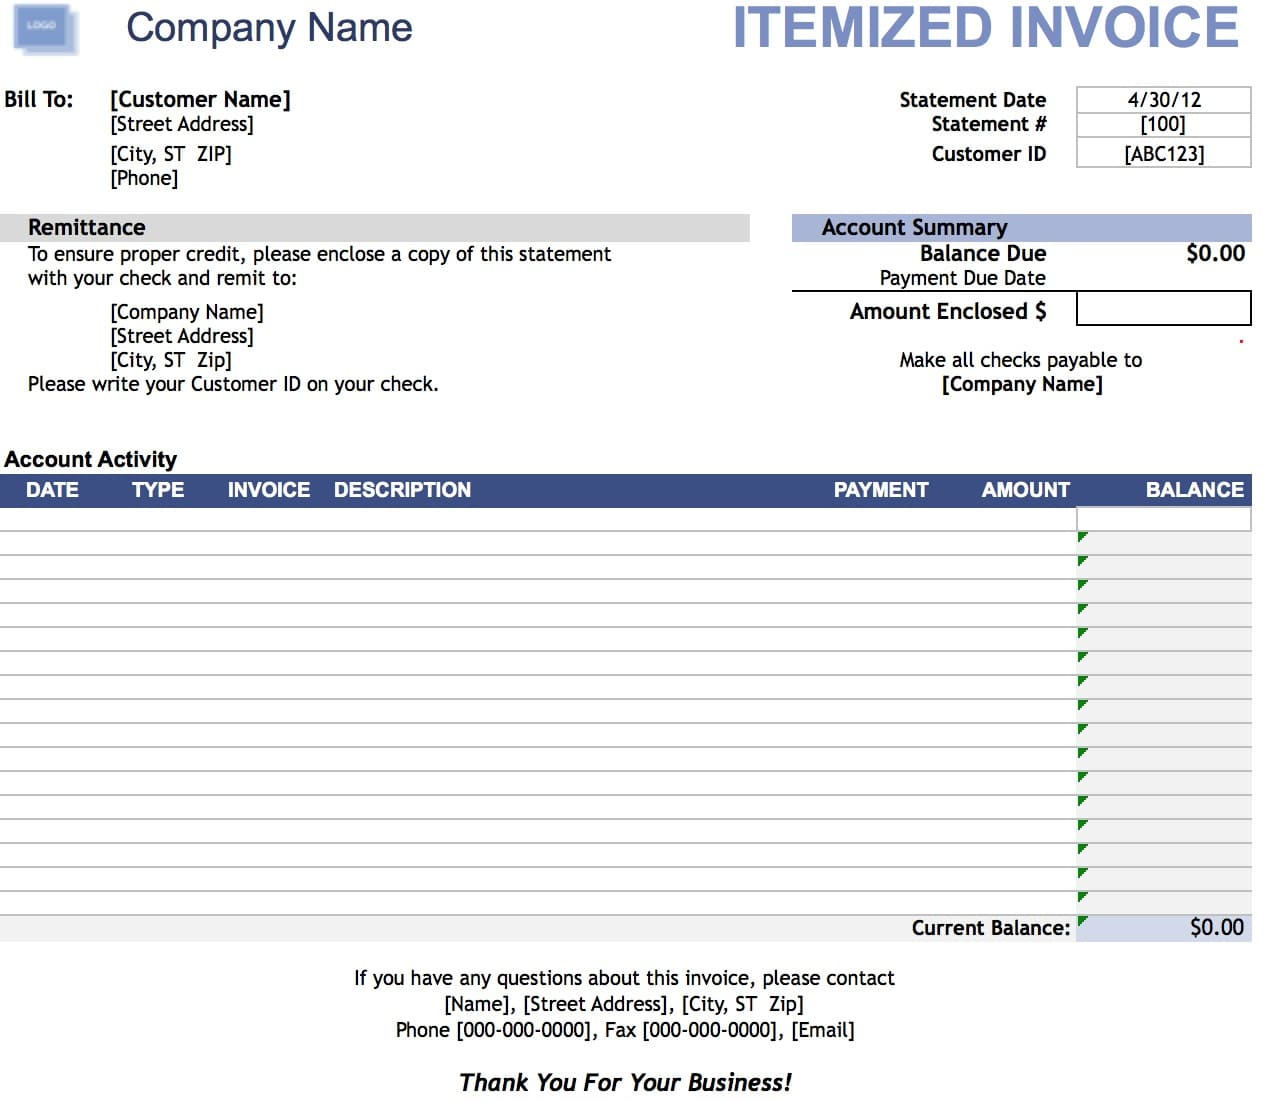 Free Itemized Invoice Template Excel PDF Word Doc - Company invoice template excel for service business